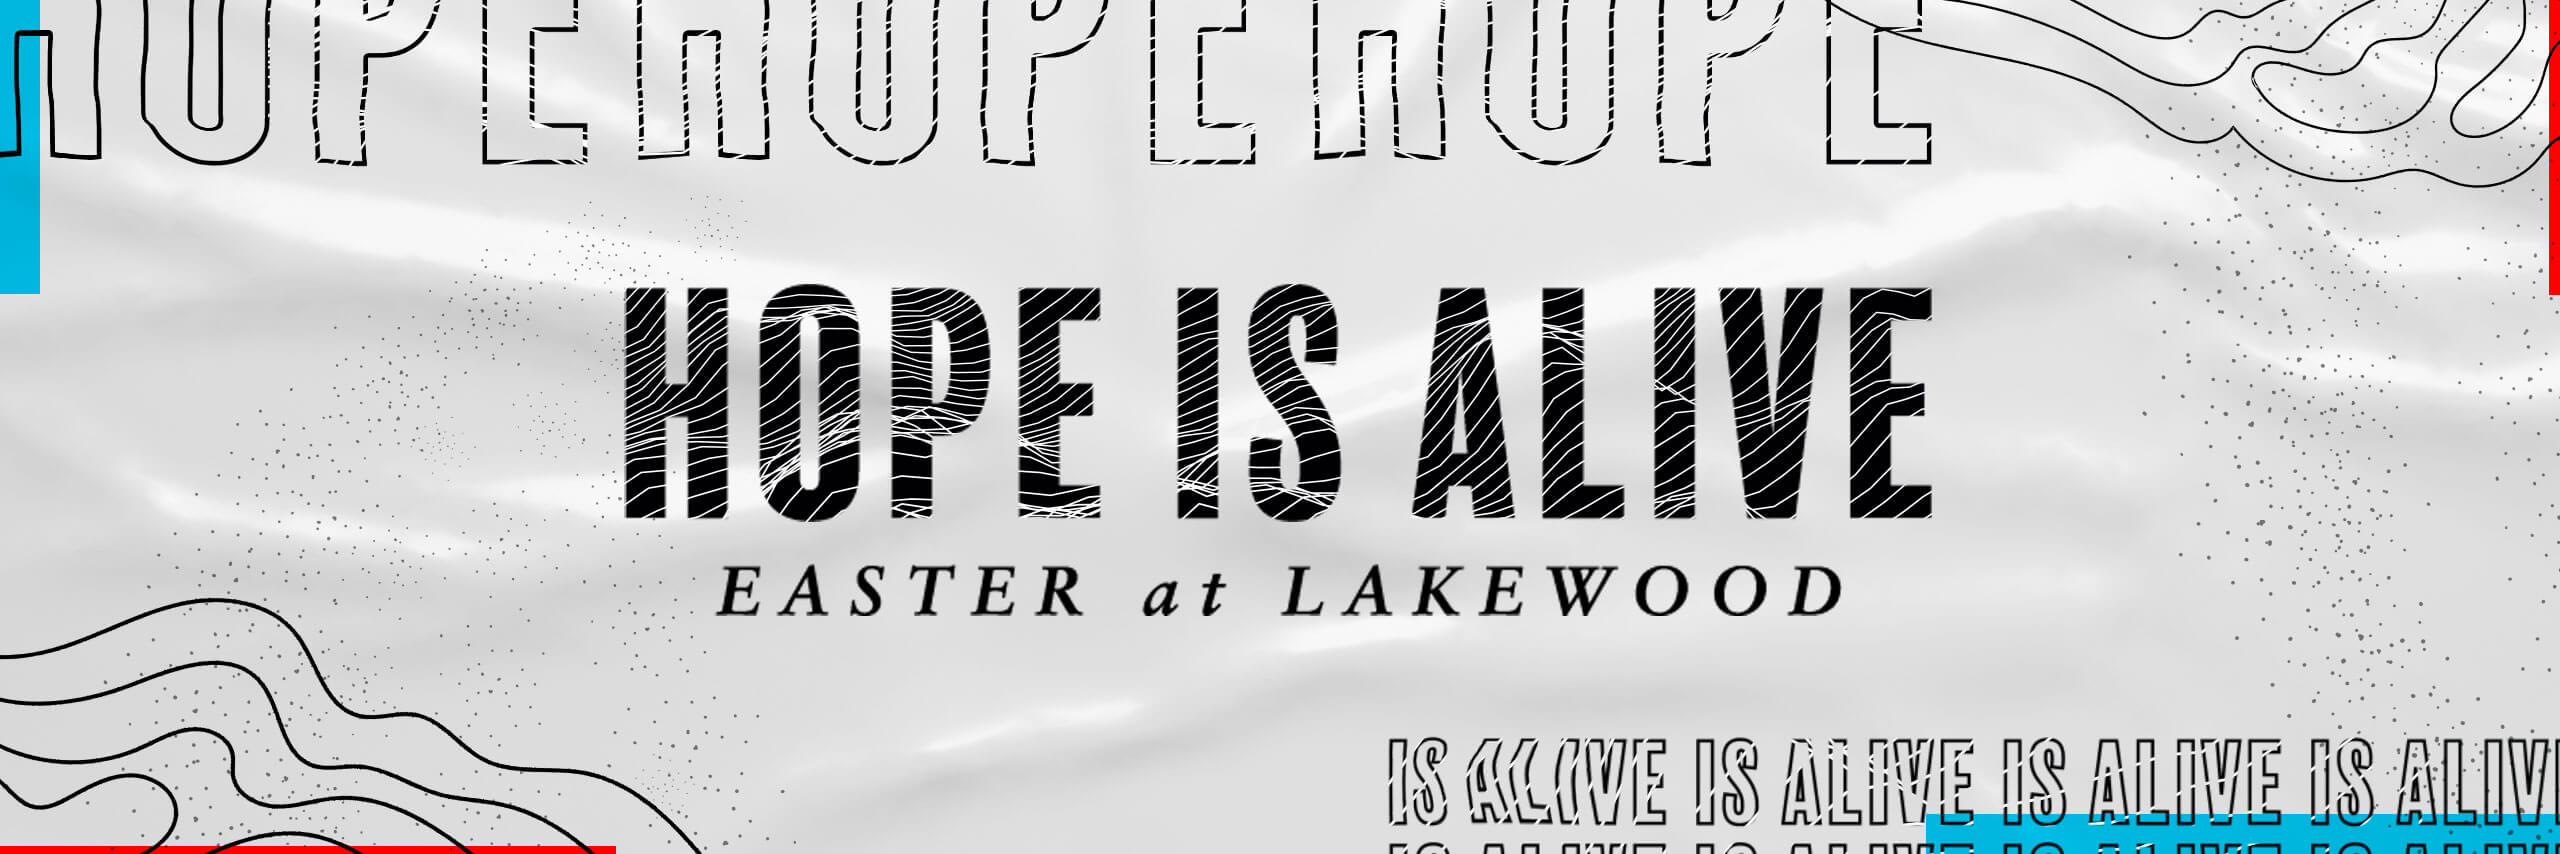 HOPE IS ALIVE | Easter at Lakewood